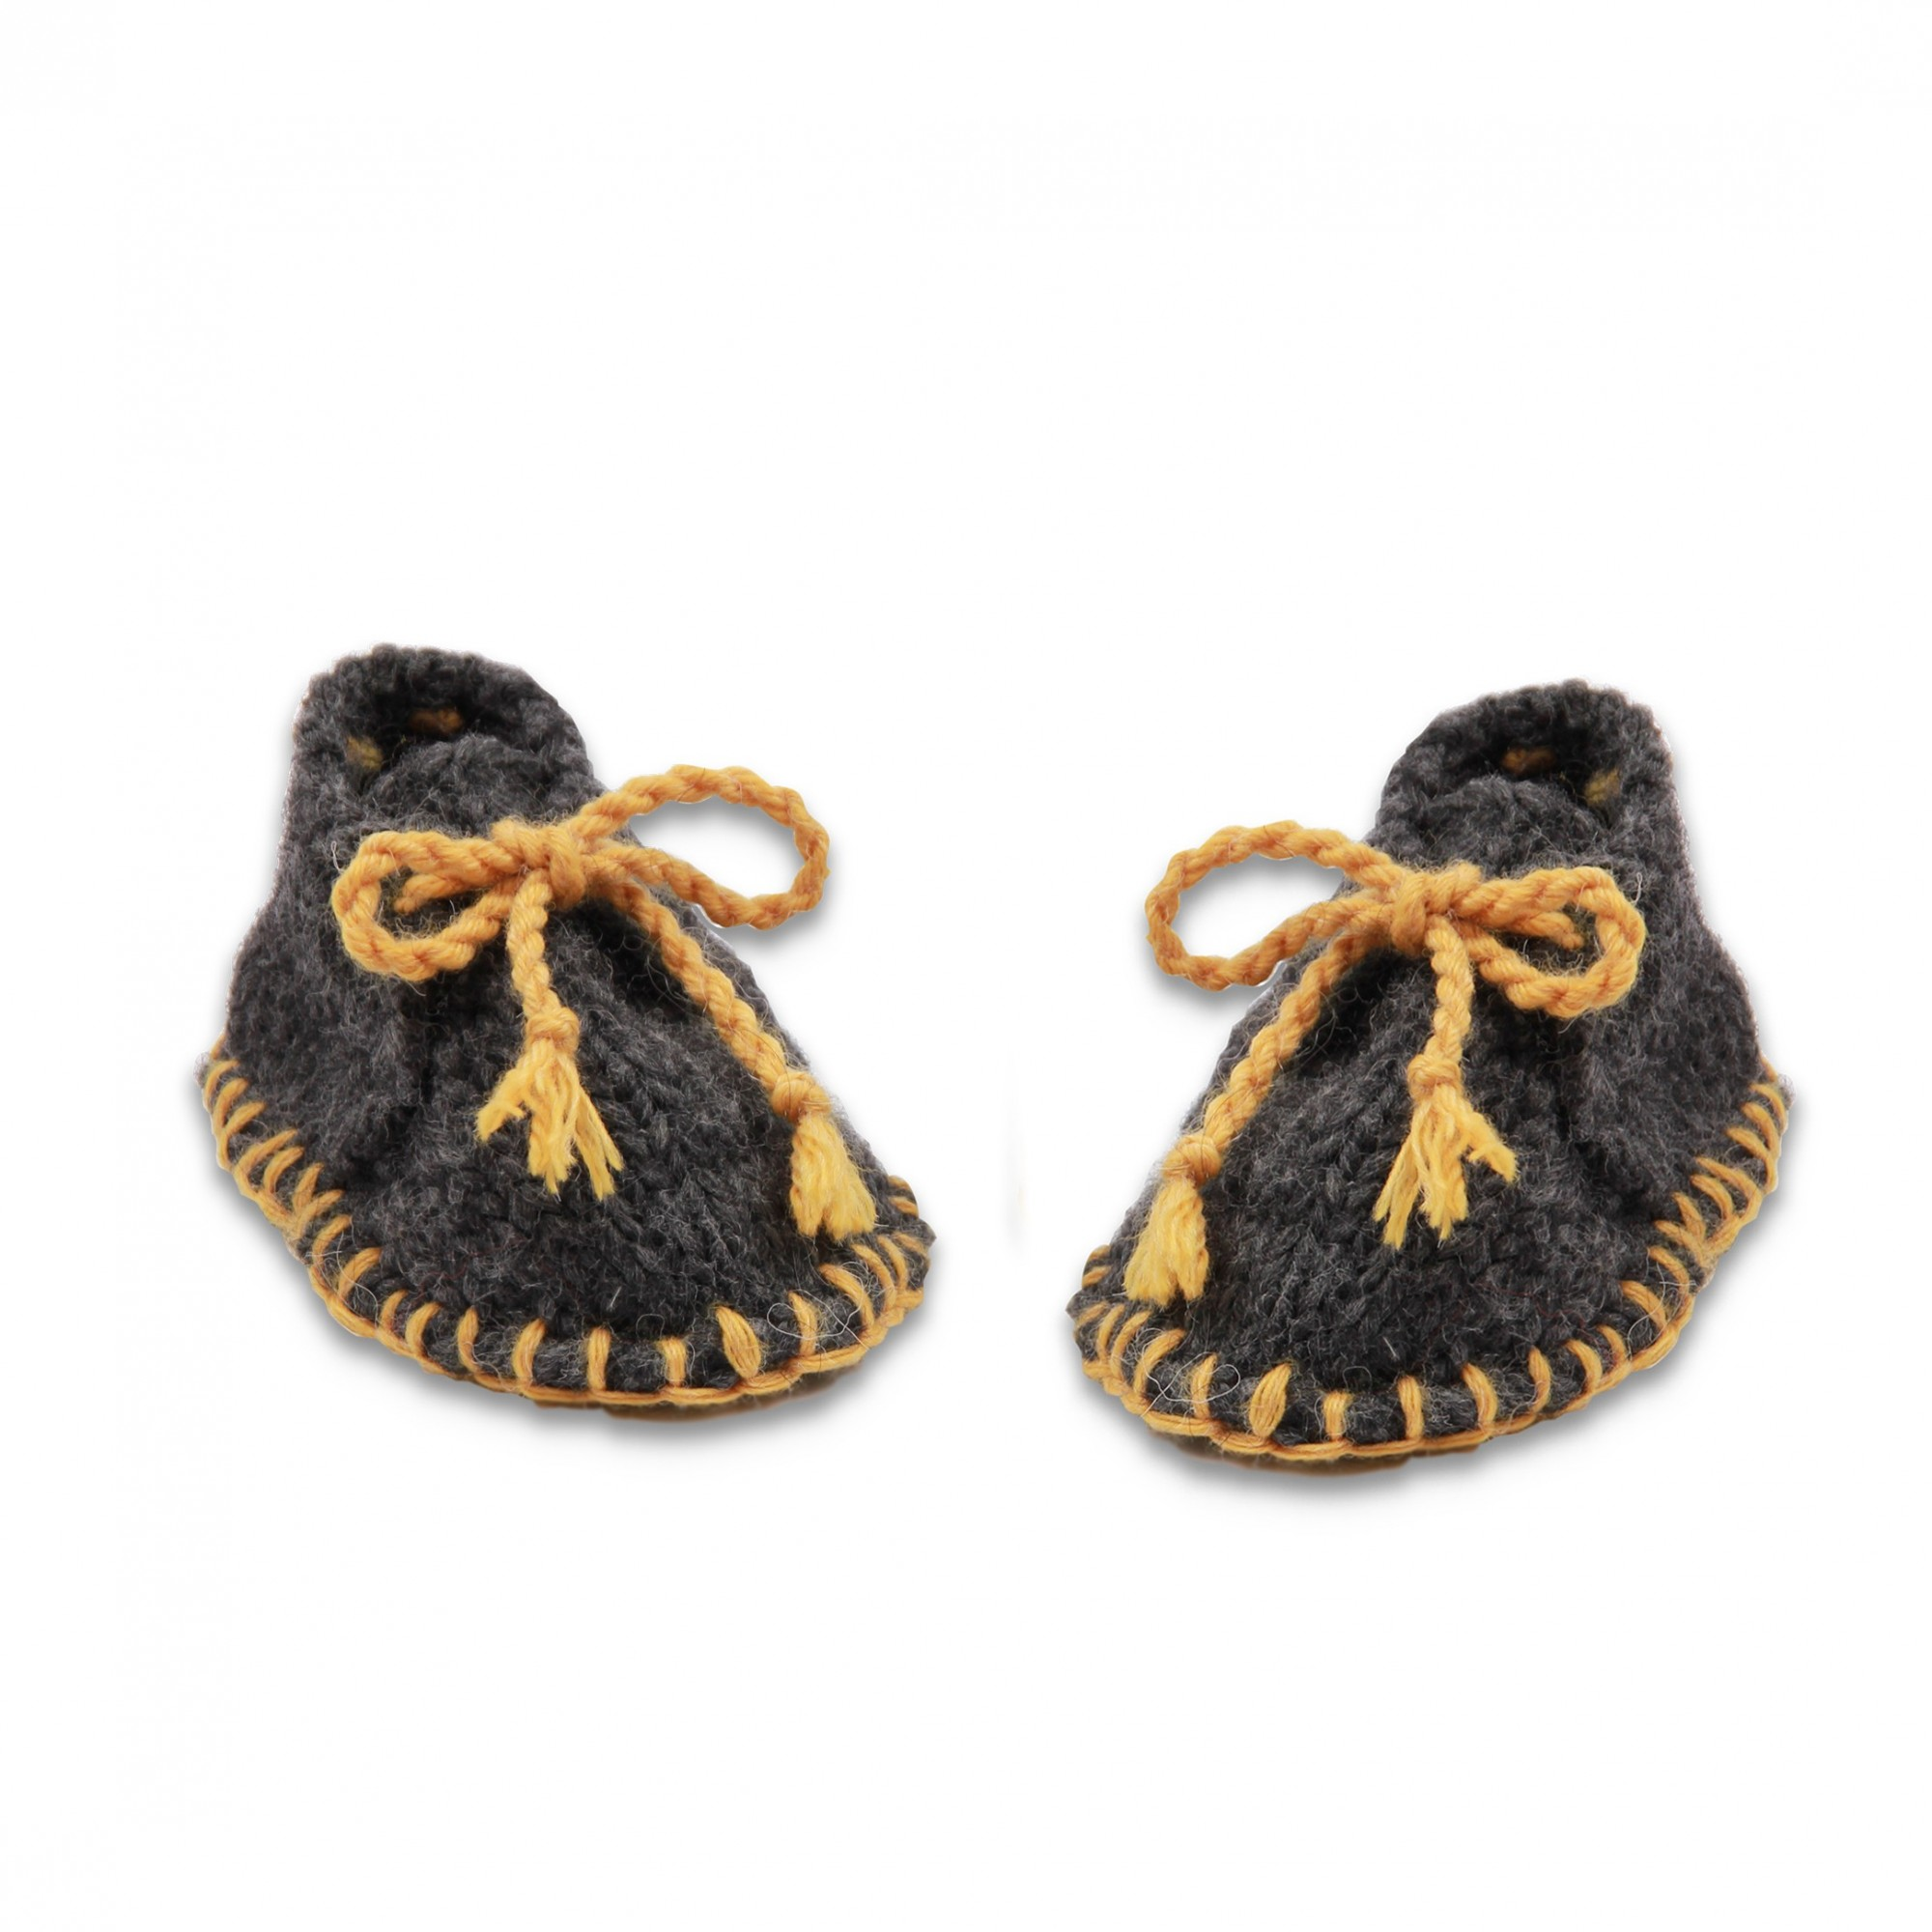 Baby slippers made from wool and alpaca dark grey and yellow like desert boots